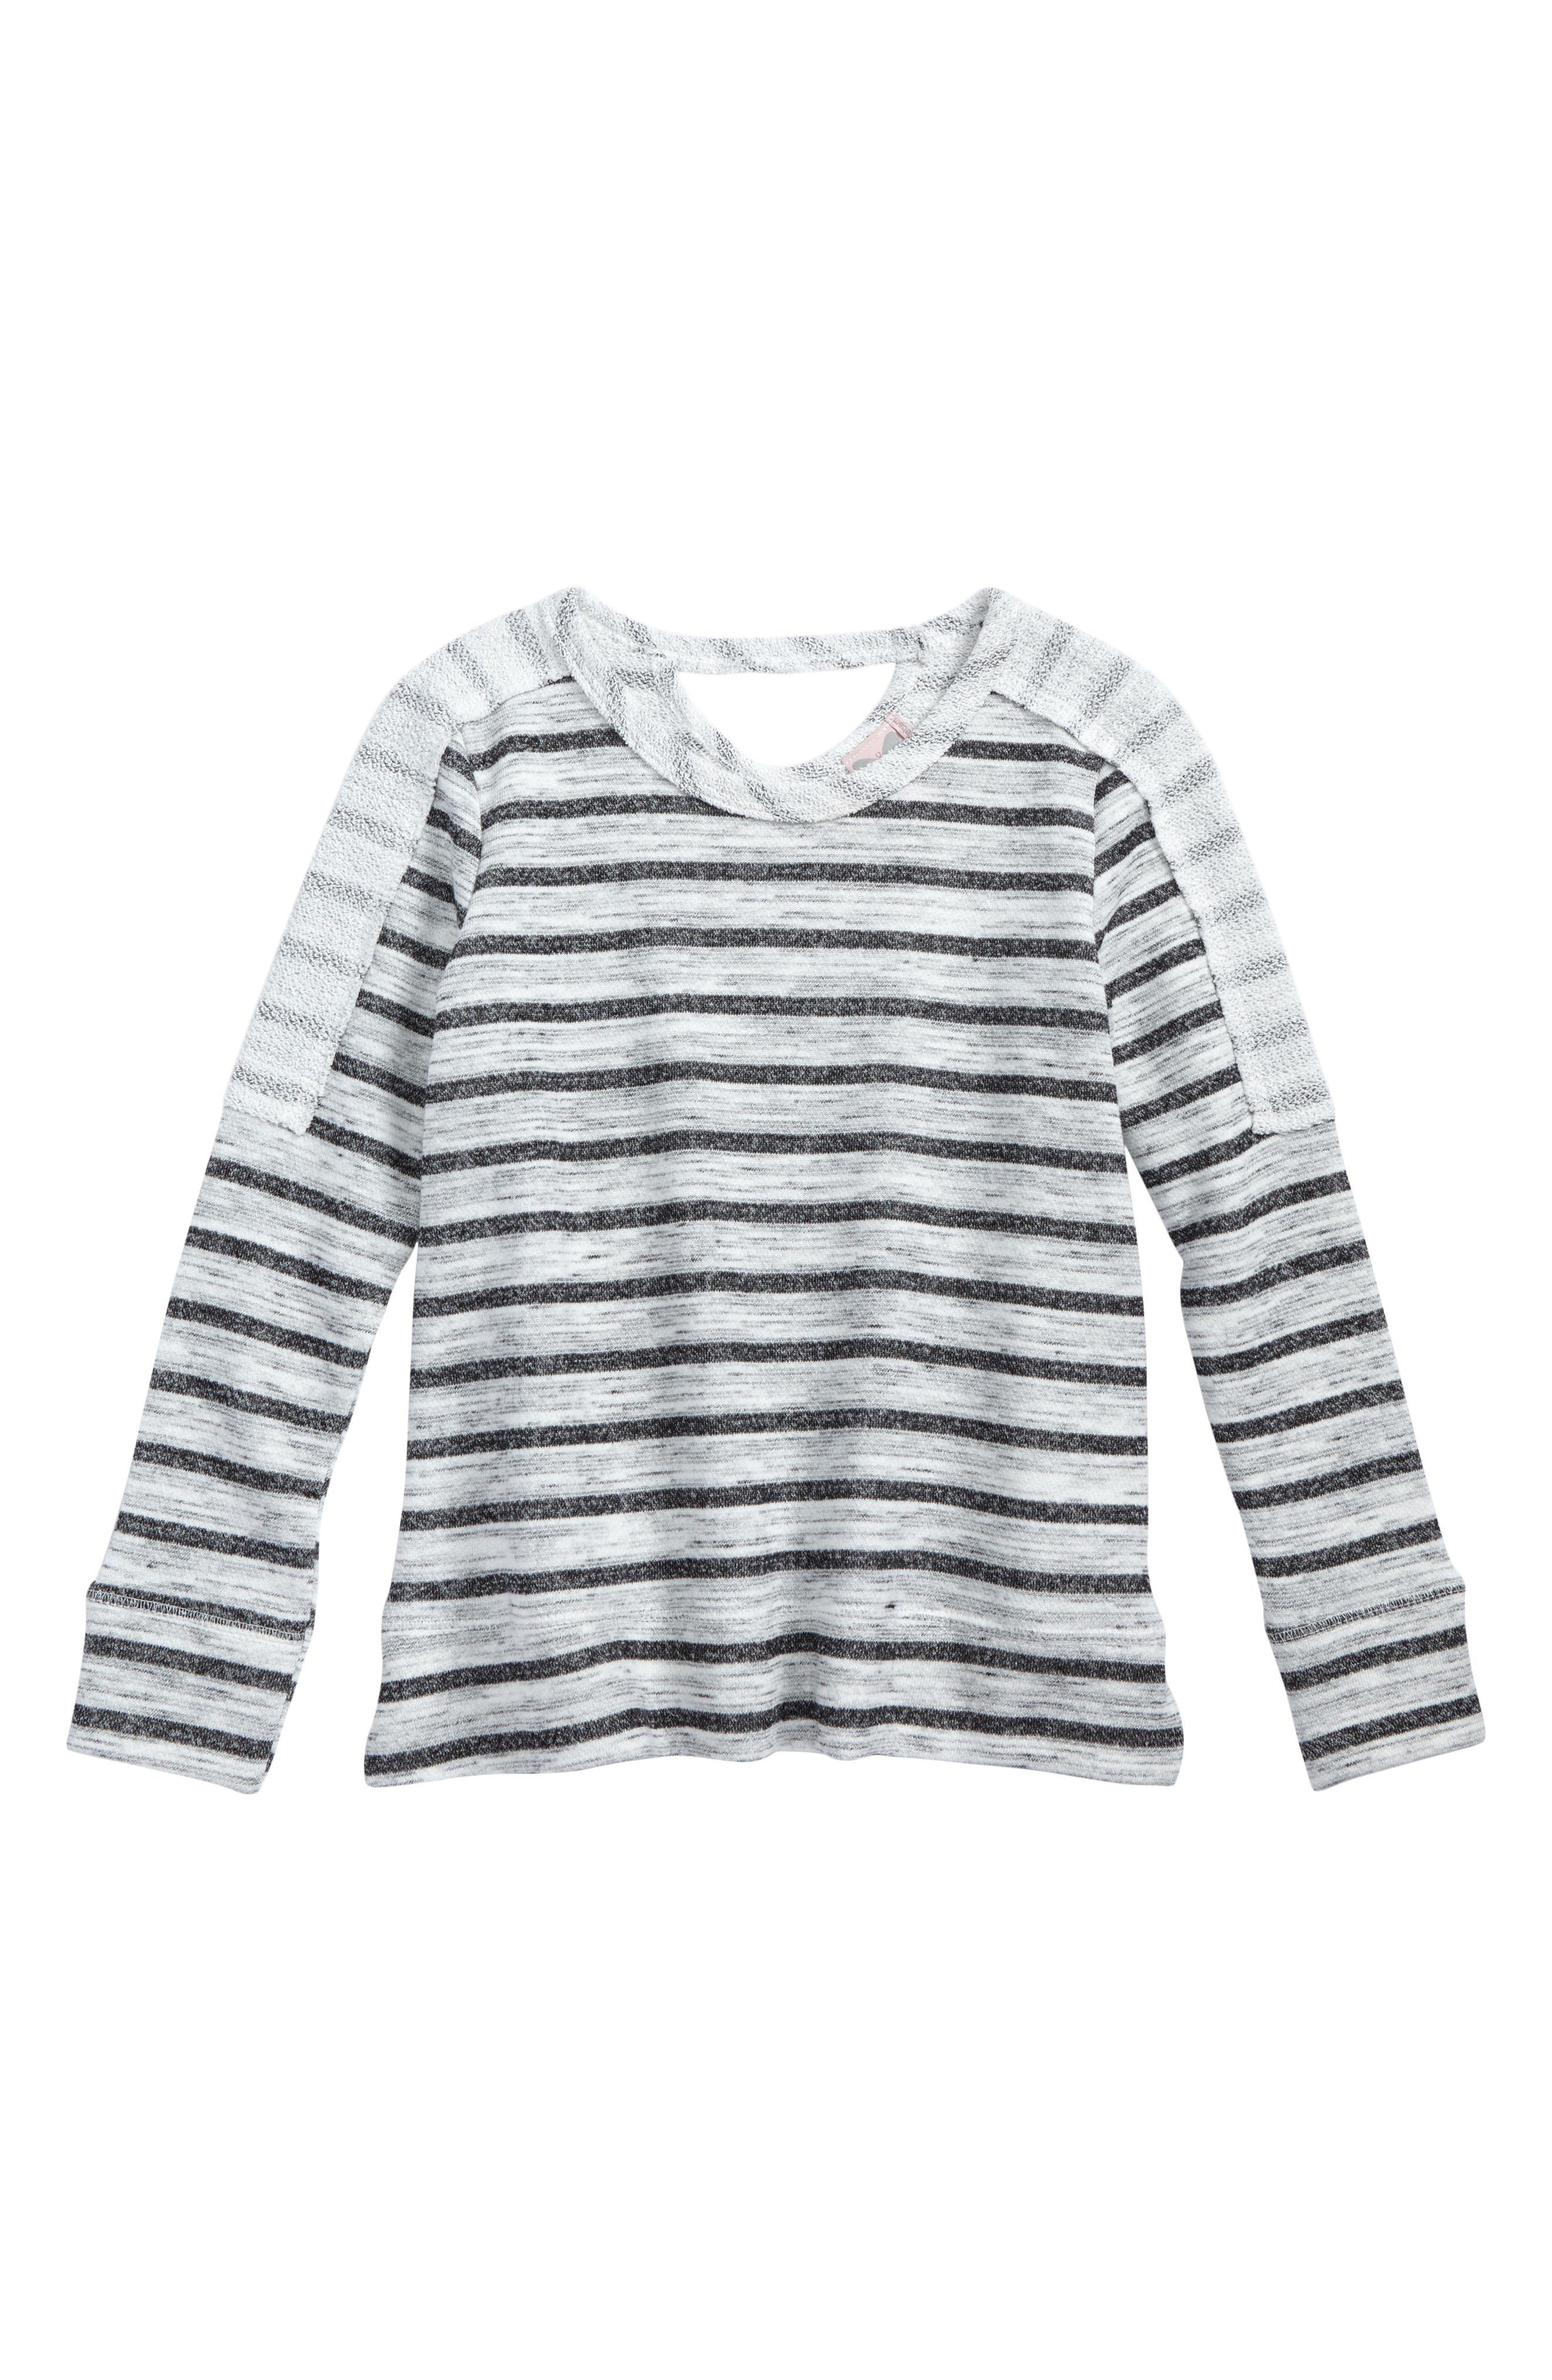 Mixed Media Stripe Top,                             Main thumbnail 1, color,                             White/ Charcoal